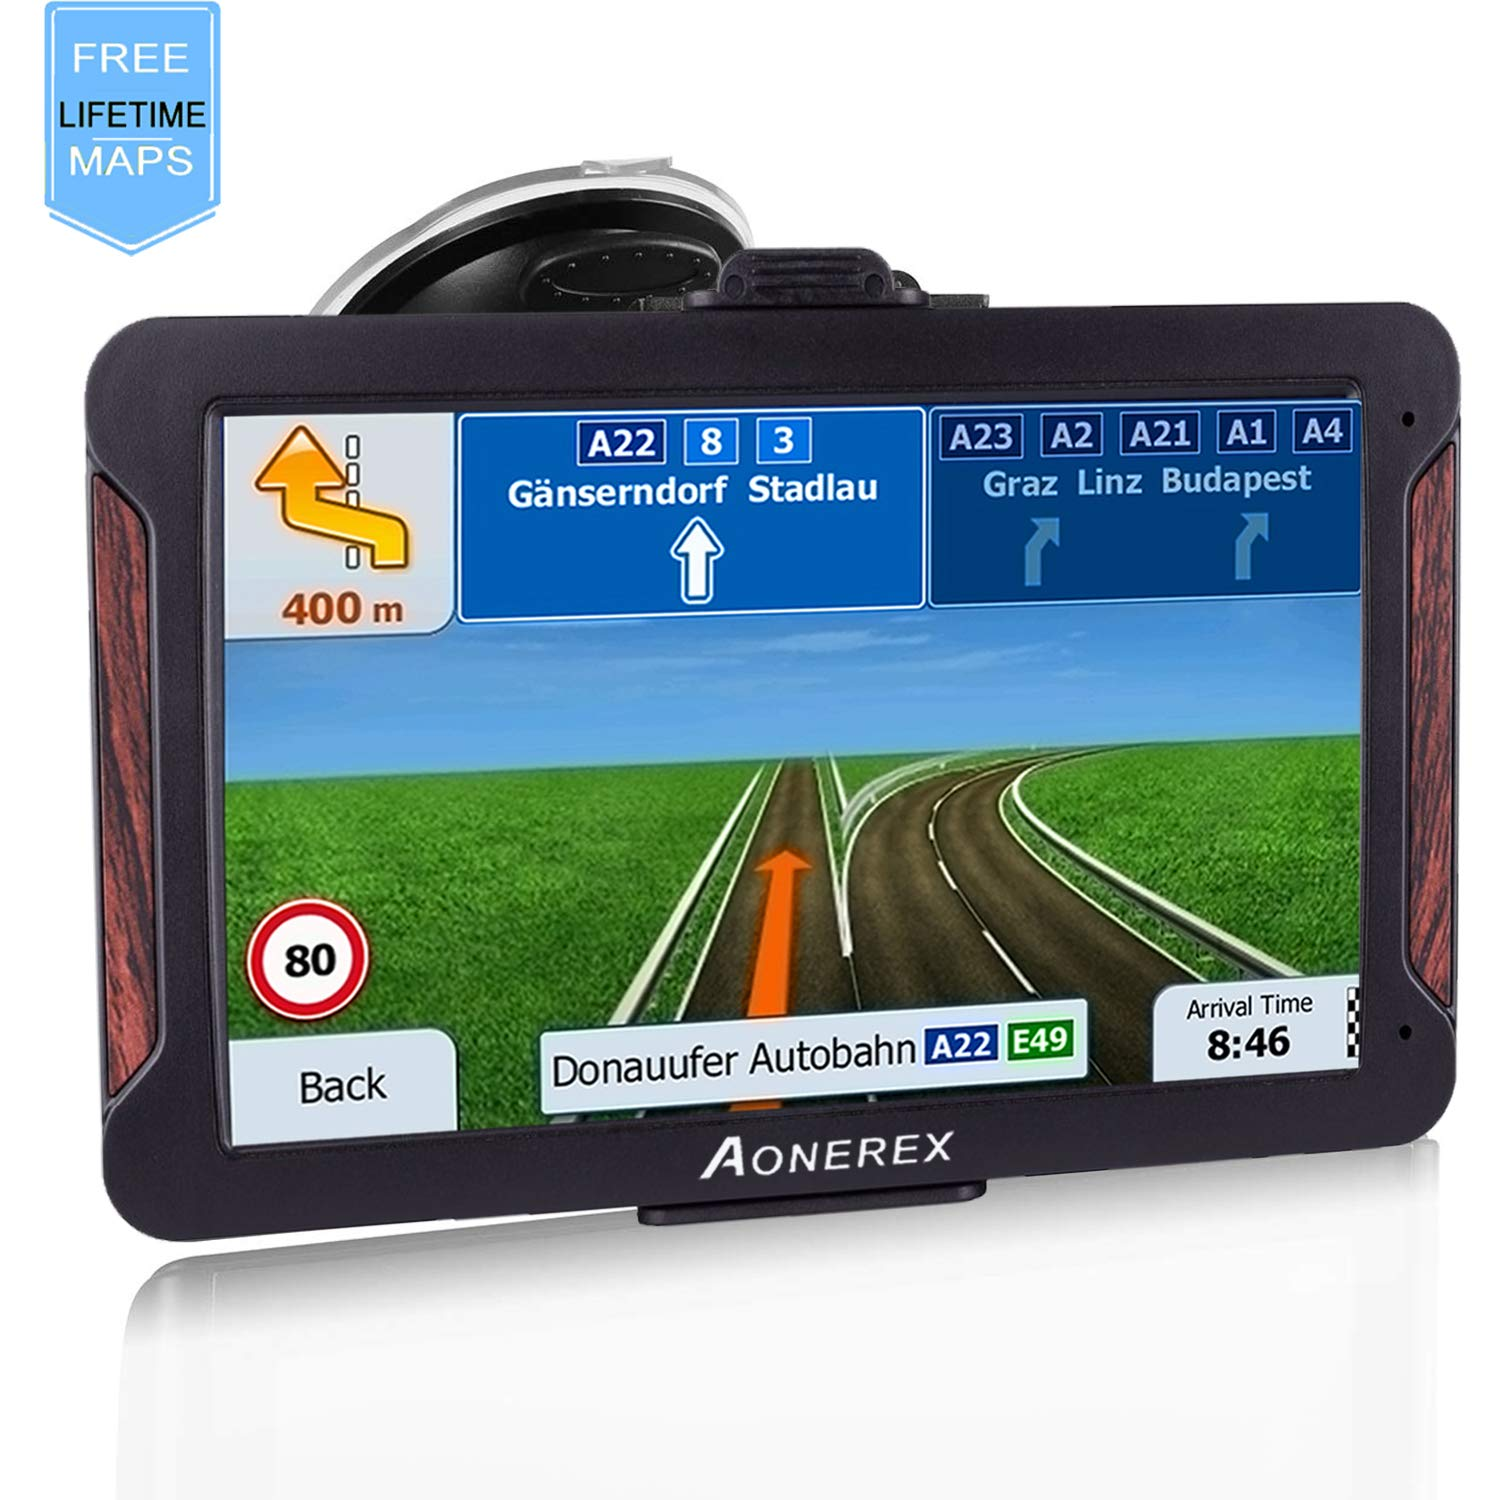 AONEREX GPS Navigation 7inch HD-8GB 256Mb Car GPS Navigation, Voice Traffic Warning,Speed Limit Reminder Satellite Navigation System with Non-Slip Car Bracket Holder-Lifetime Free Map Updates by Aonerex (Image #1)